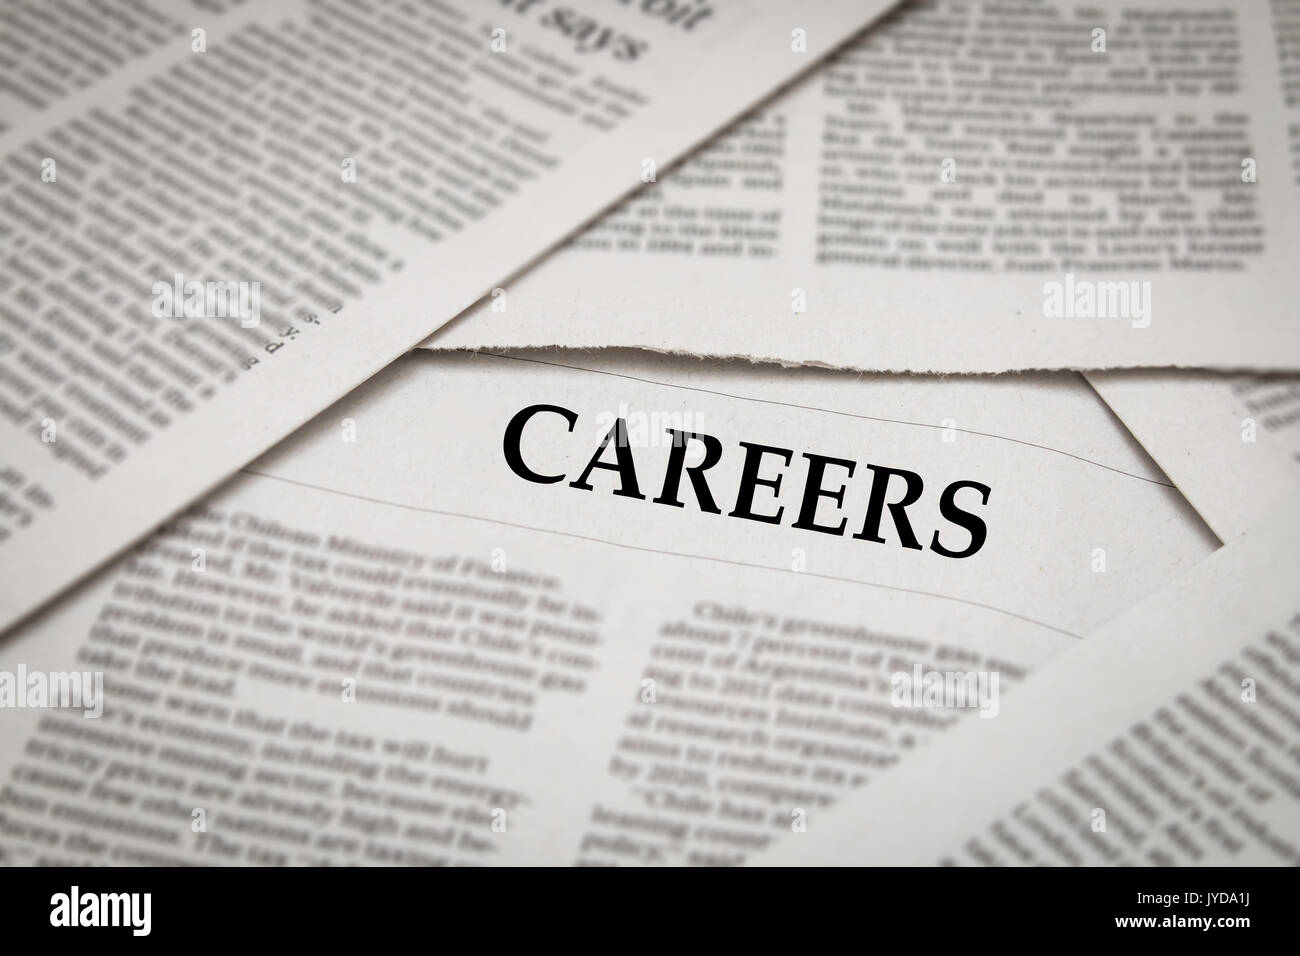 careers headline on newspaper background - Stock Image